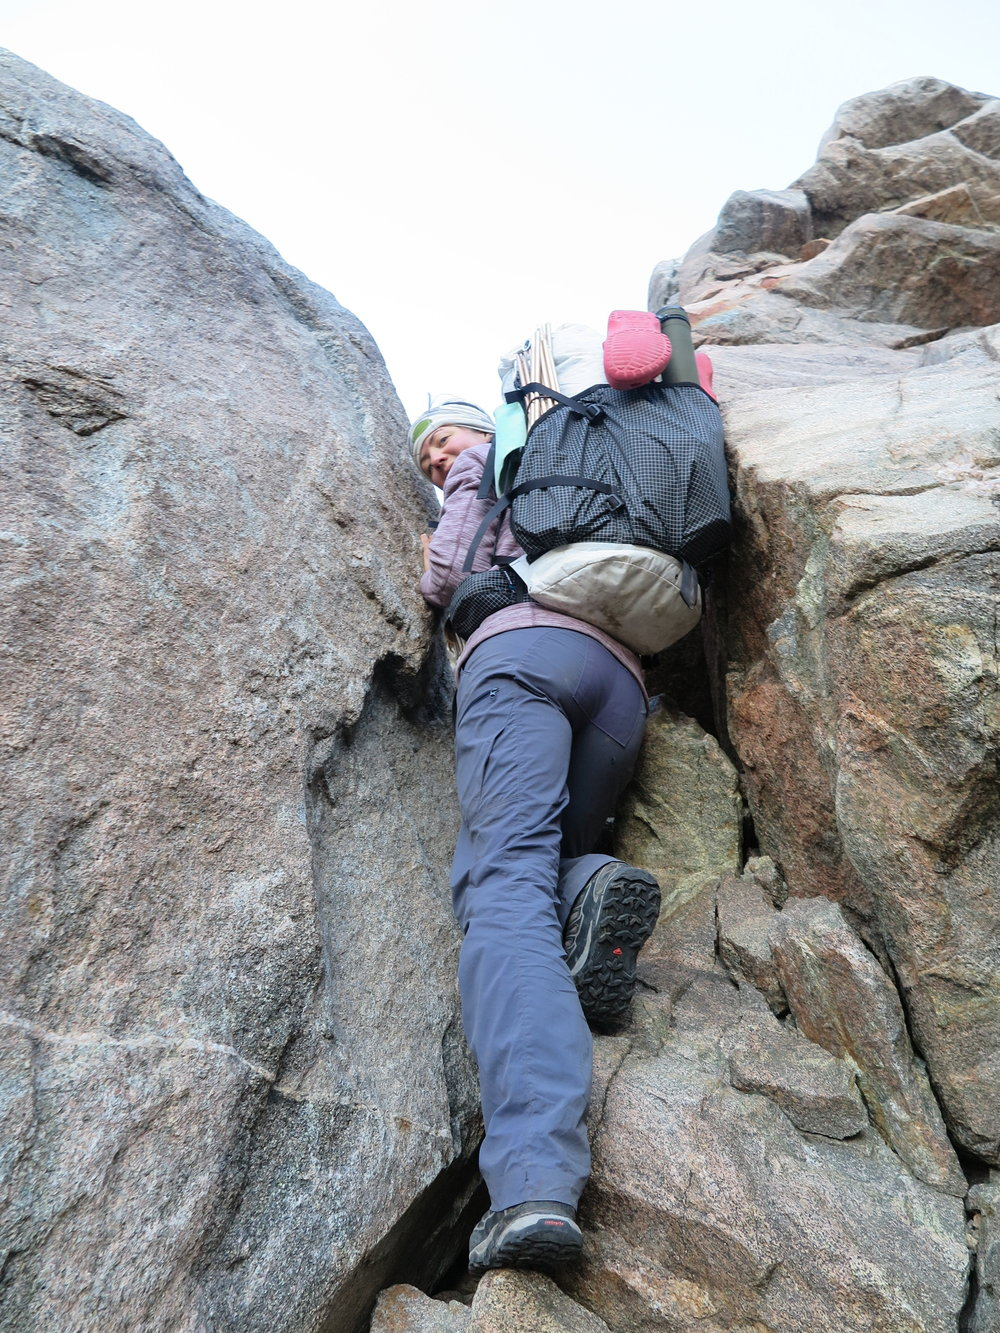 Climbing up and over the notch.